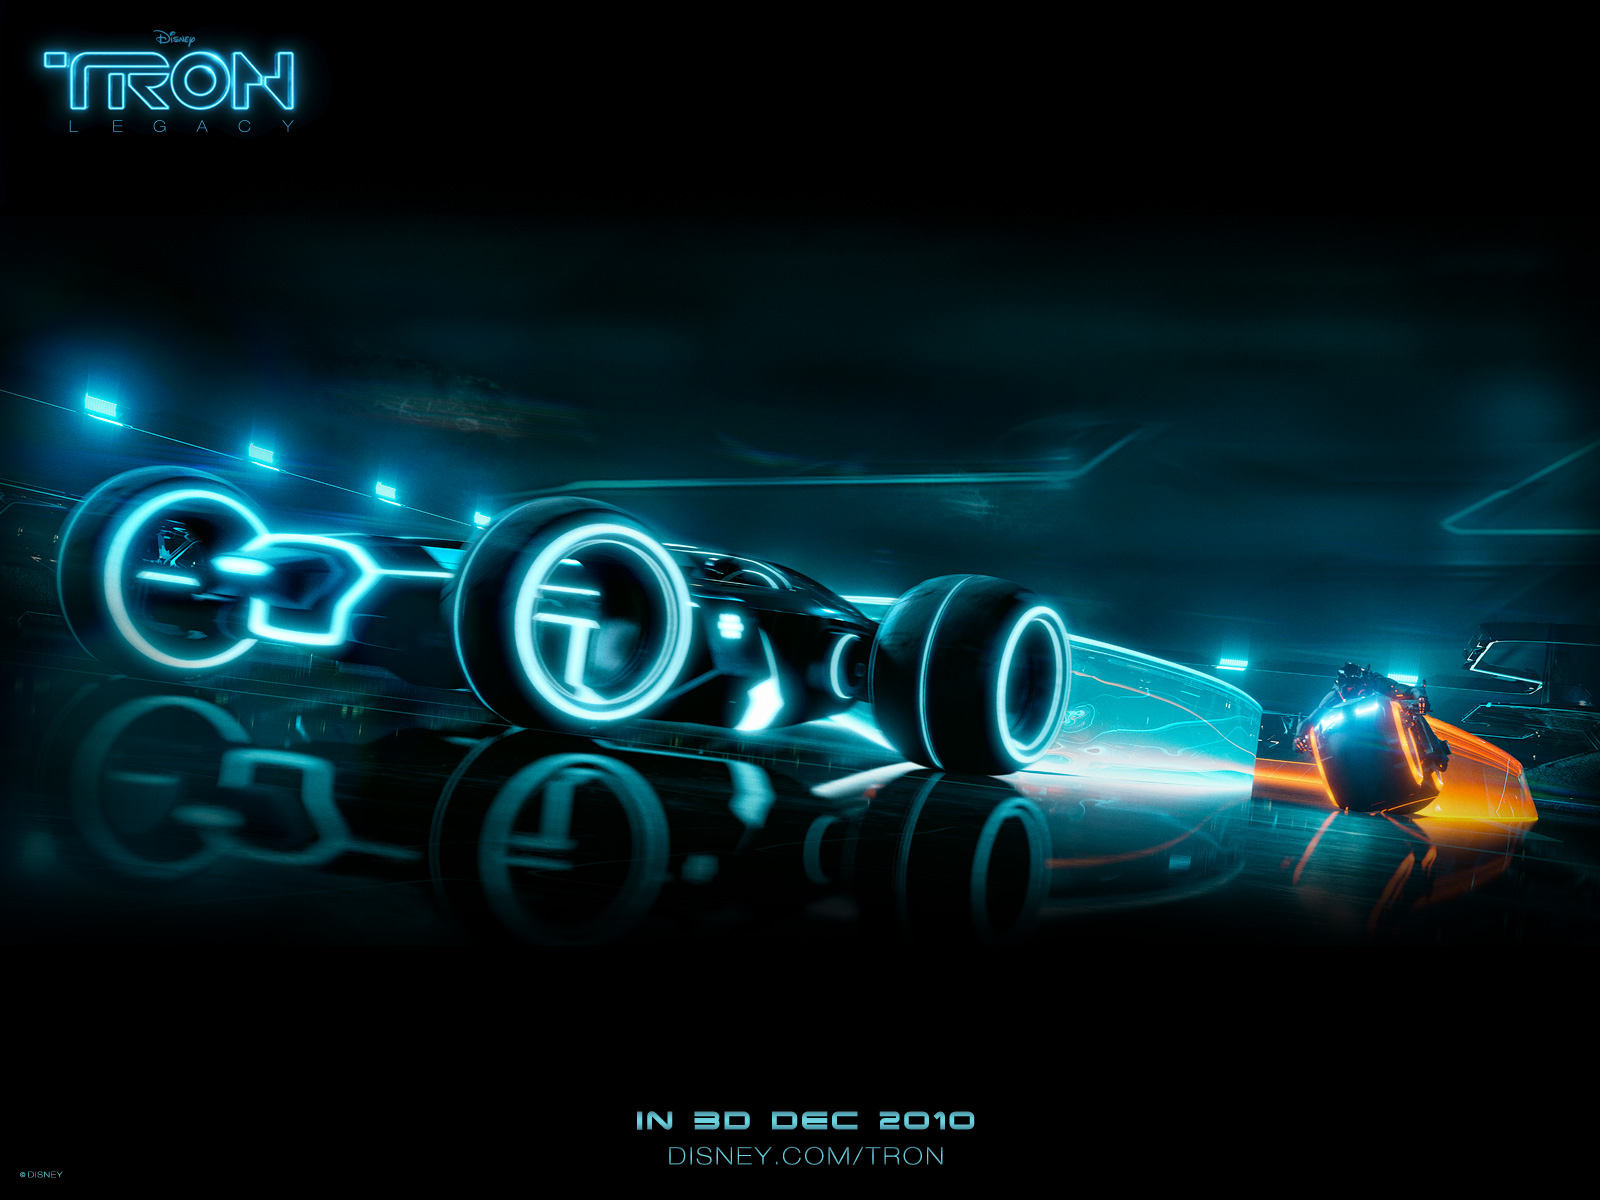 Awesome TronLegacy Wallpapers Movie Wallpapers 1600x1200